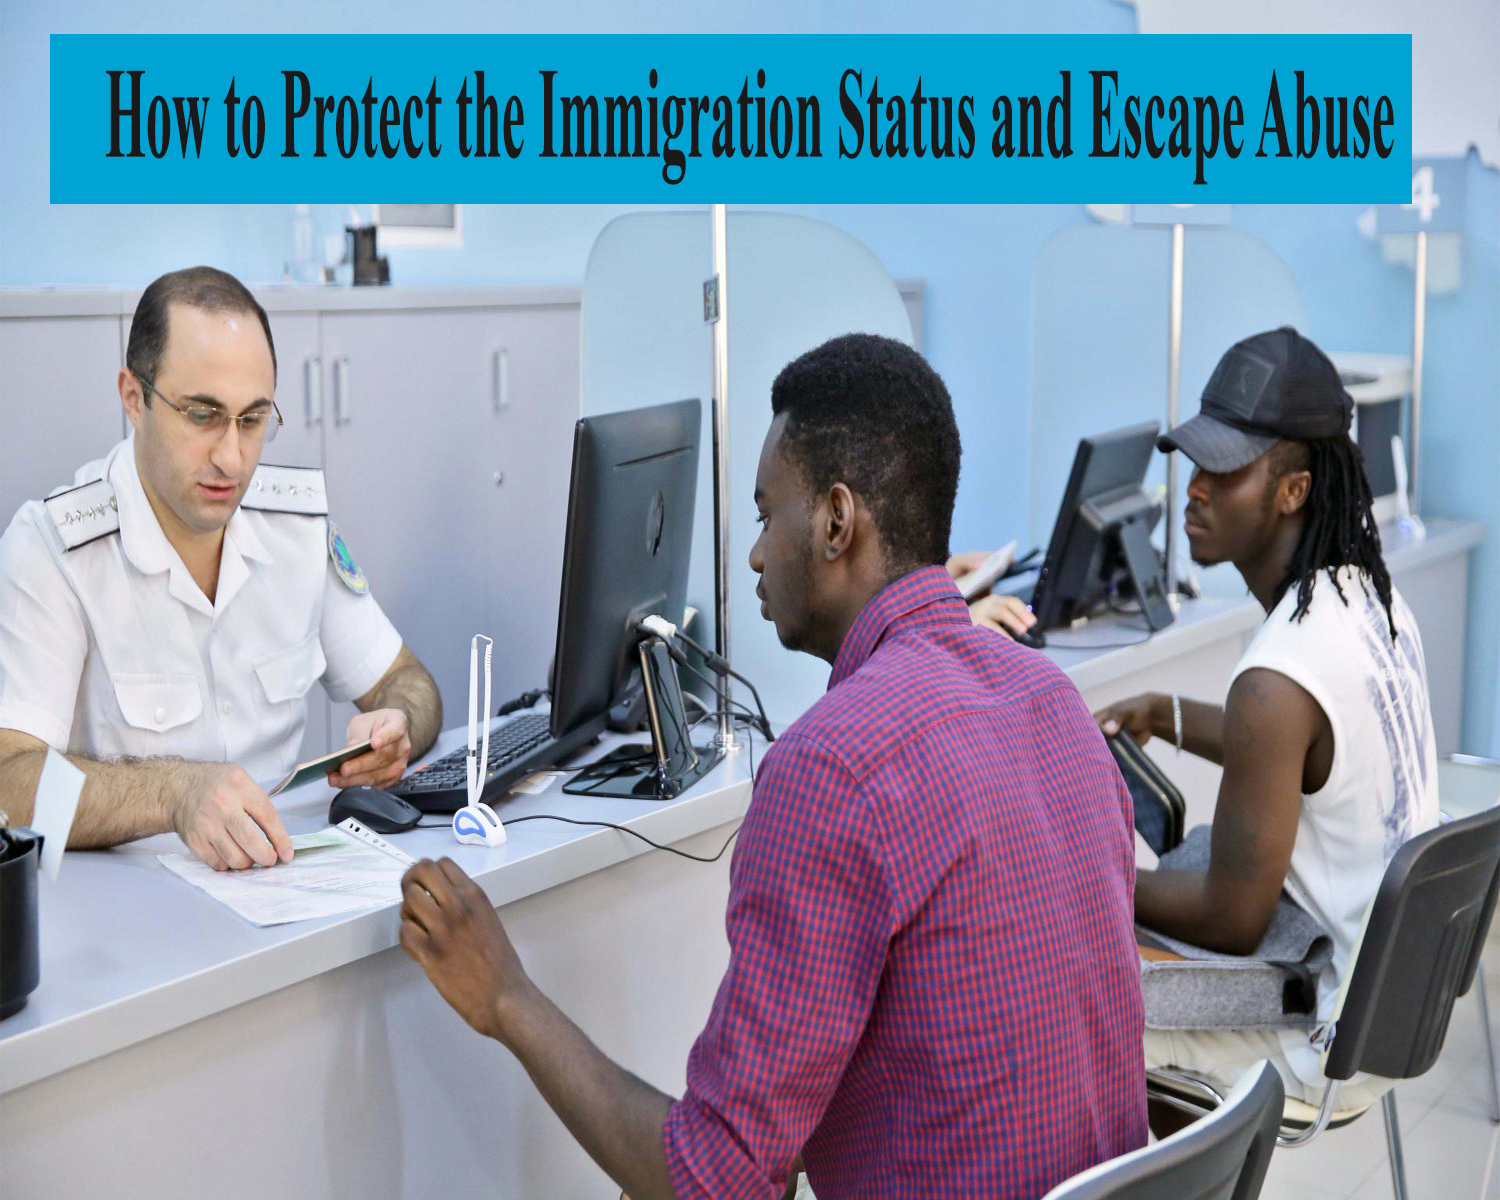 How to Protect the Immigration Status and Escape Abuse